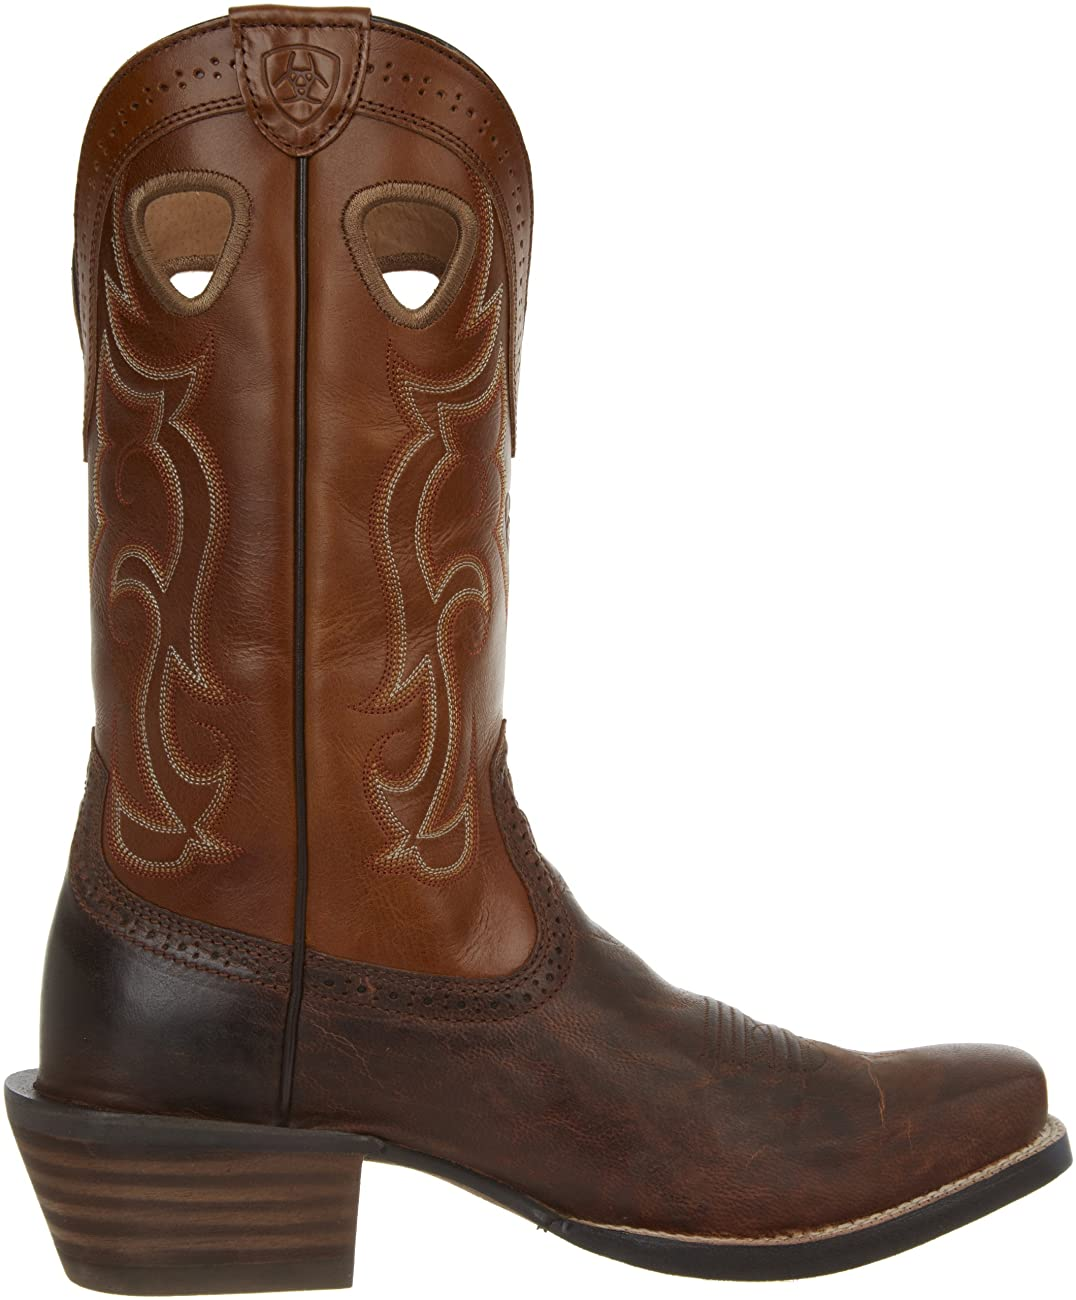 Ariat Men's Rawhide Western Cowboy Boot 5